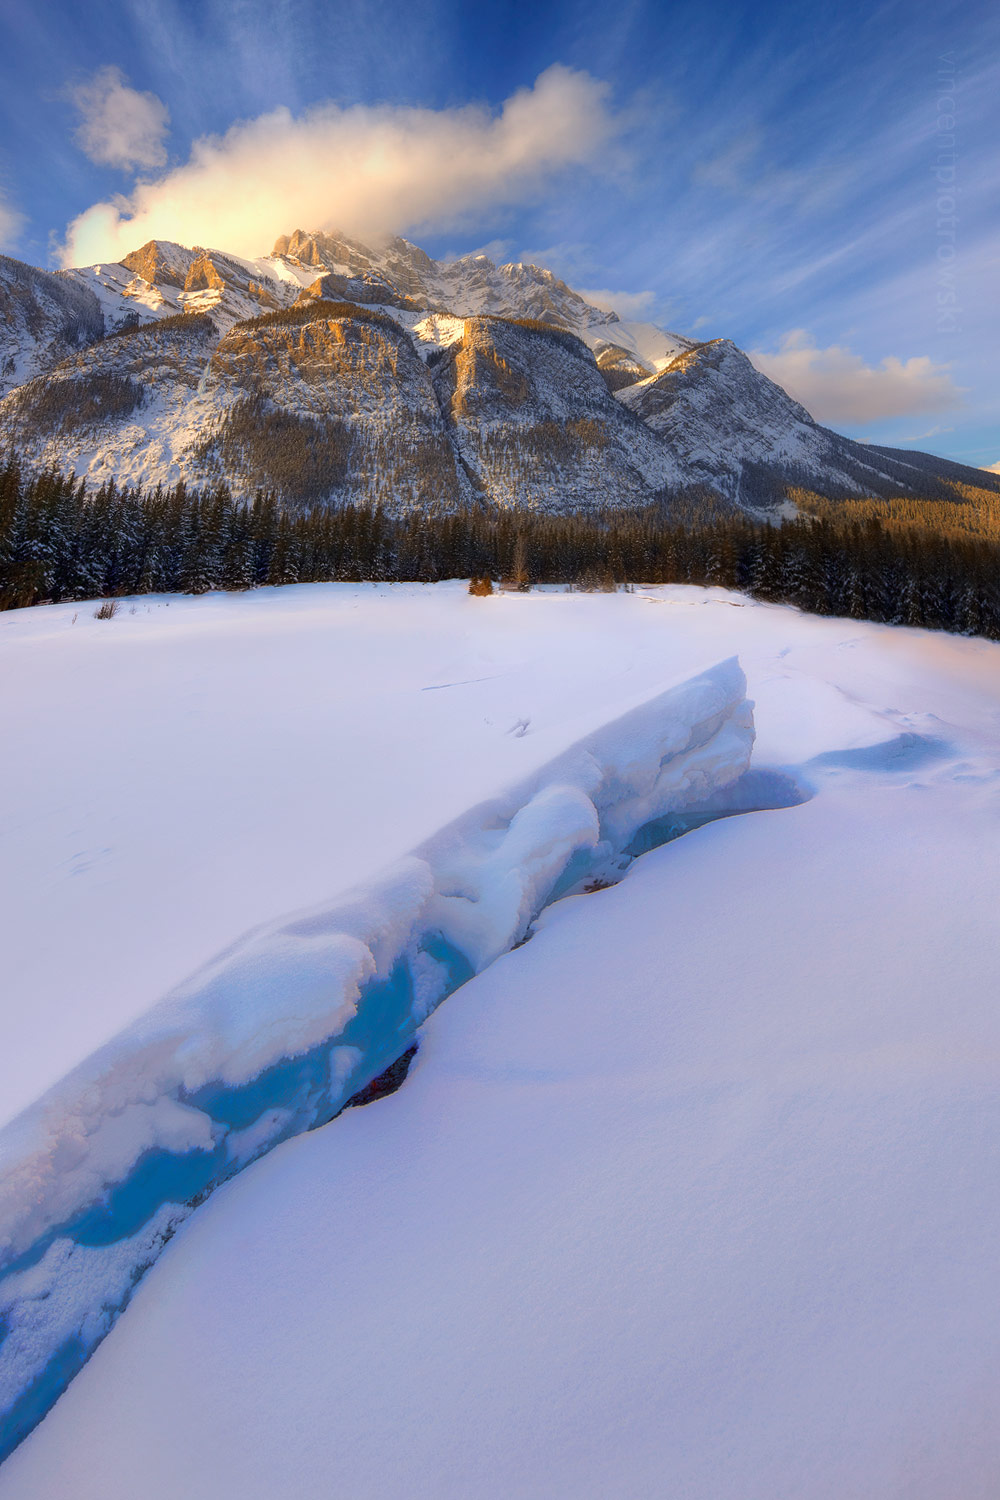 A photograph of a crack in the thick ice of Cascade Ponds leading up to Cascade Mountain in Banff National Park.